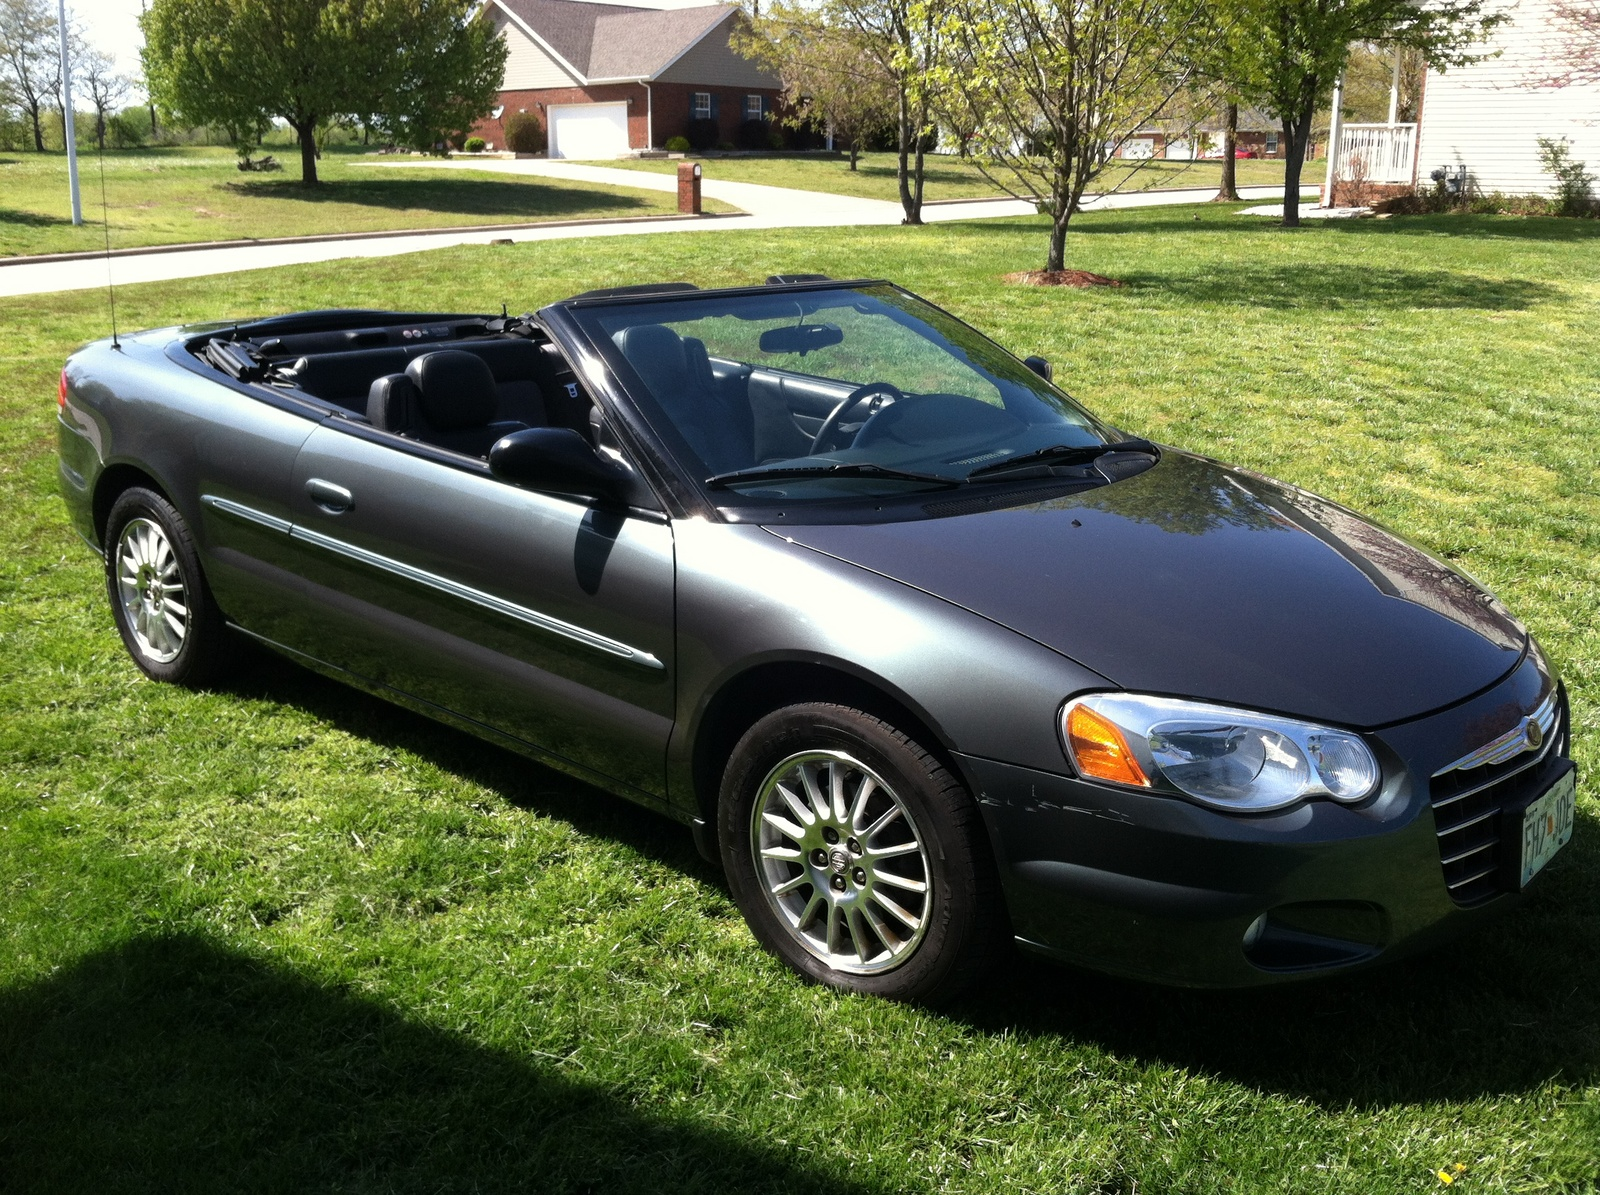 2004 chrysler sebring pictures cargurus. Black Bedroom Furniture Sets. Home Design Ideas